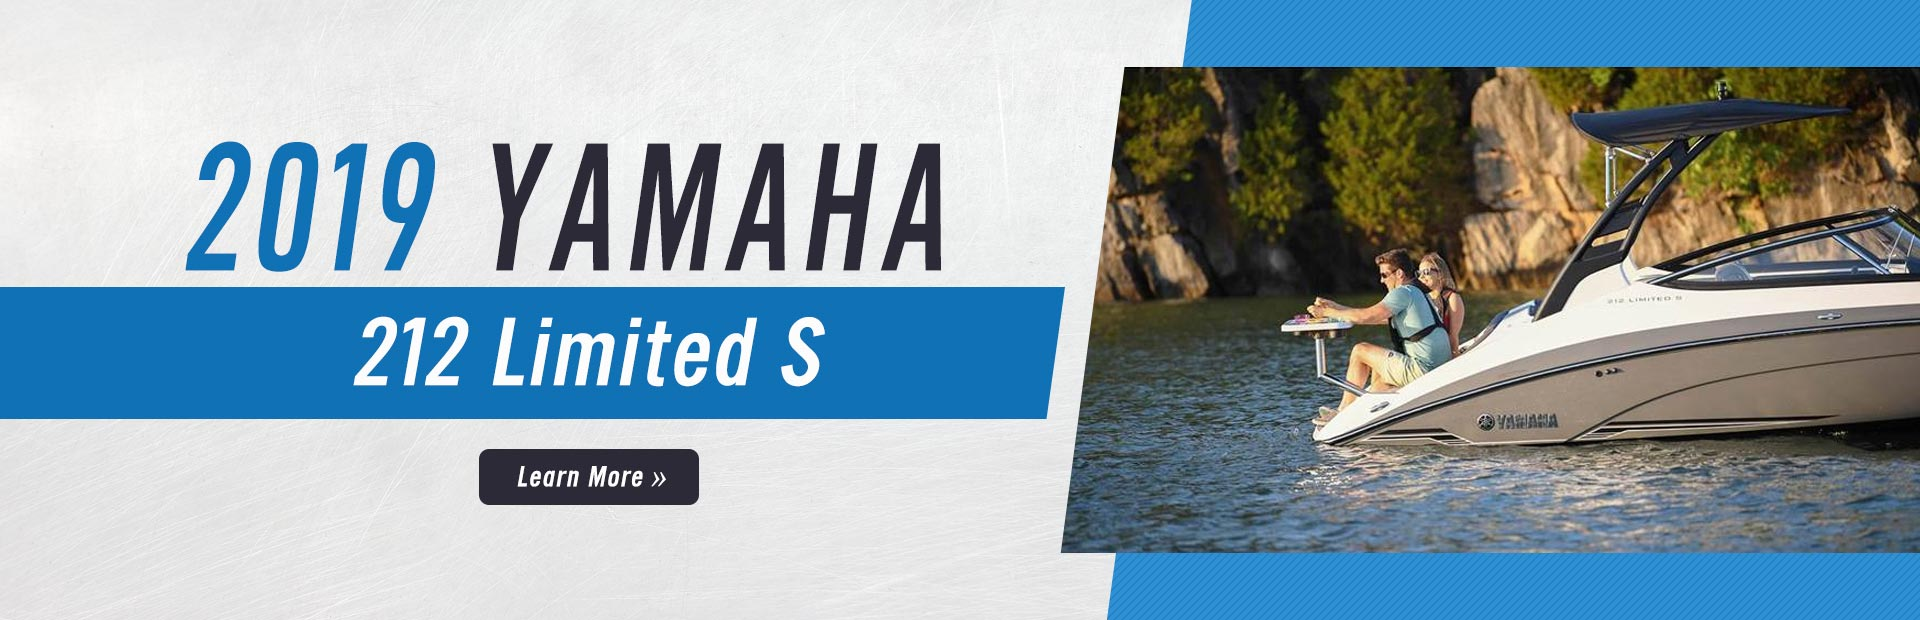 2019 Yamaha 212 Limited S: Click here to view the model.